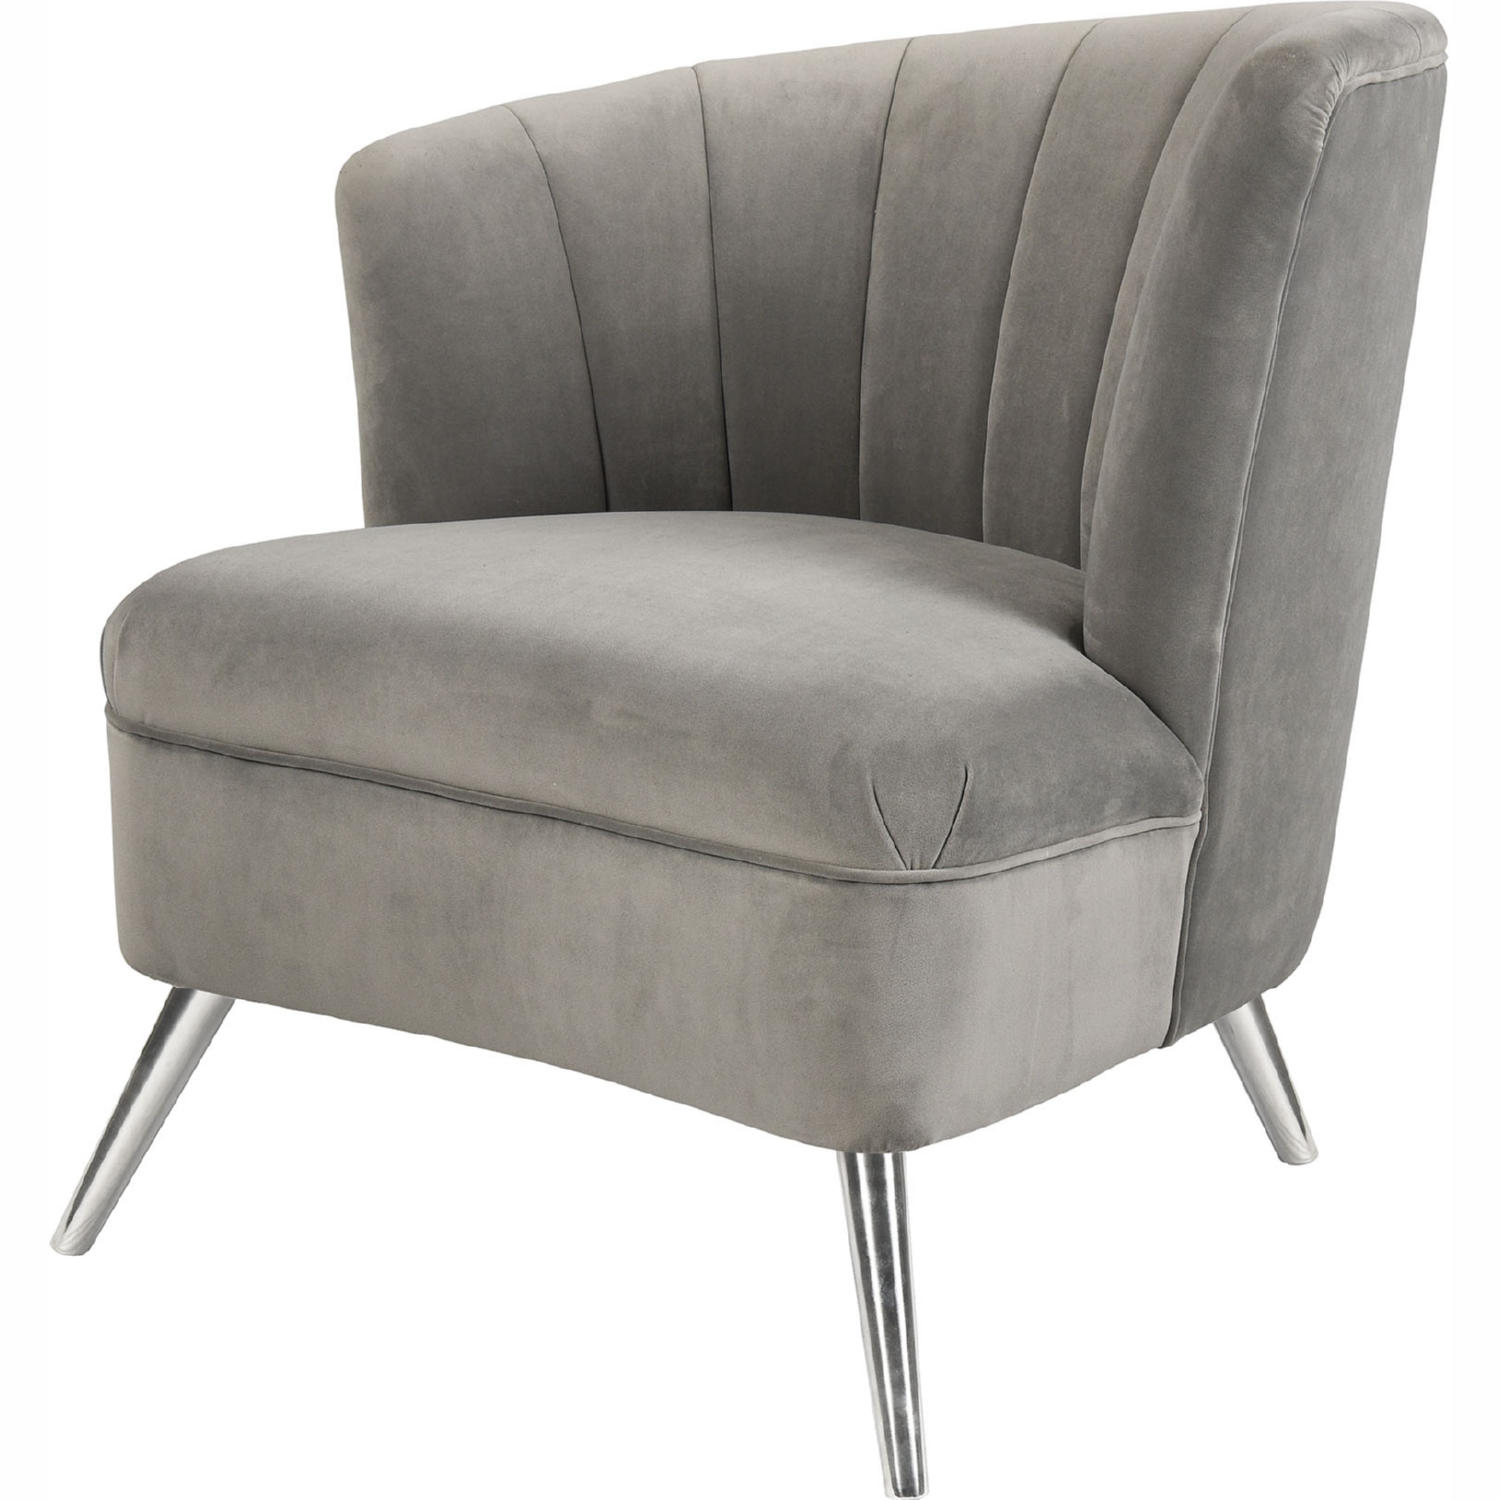 Pleasant Two Faced Right Accent Chair In Grey Velvet Stainless By Elk Home Frankydiablos Diy Chair Ideas Frankydiabloscom